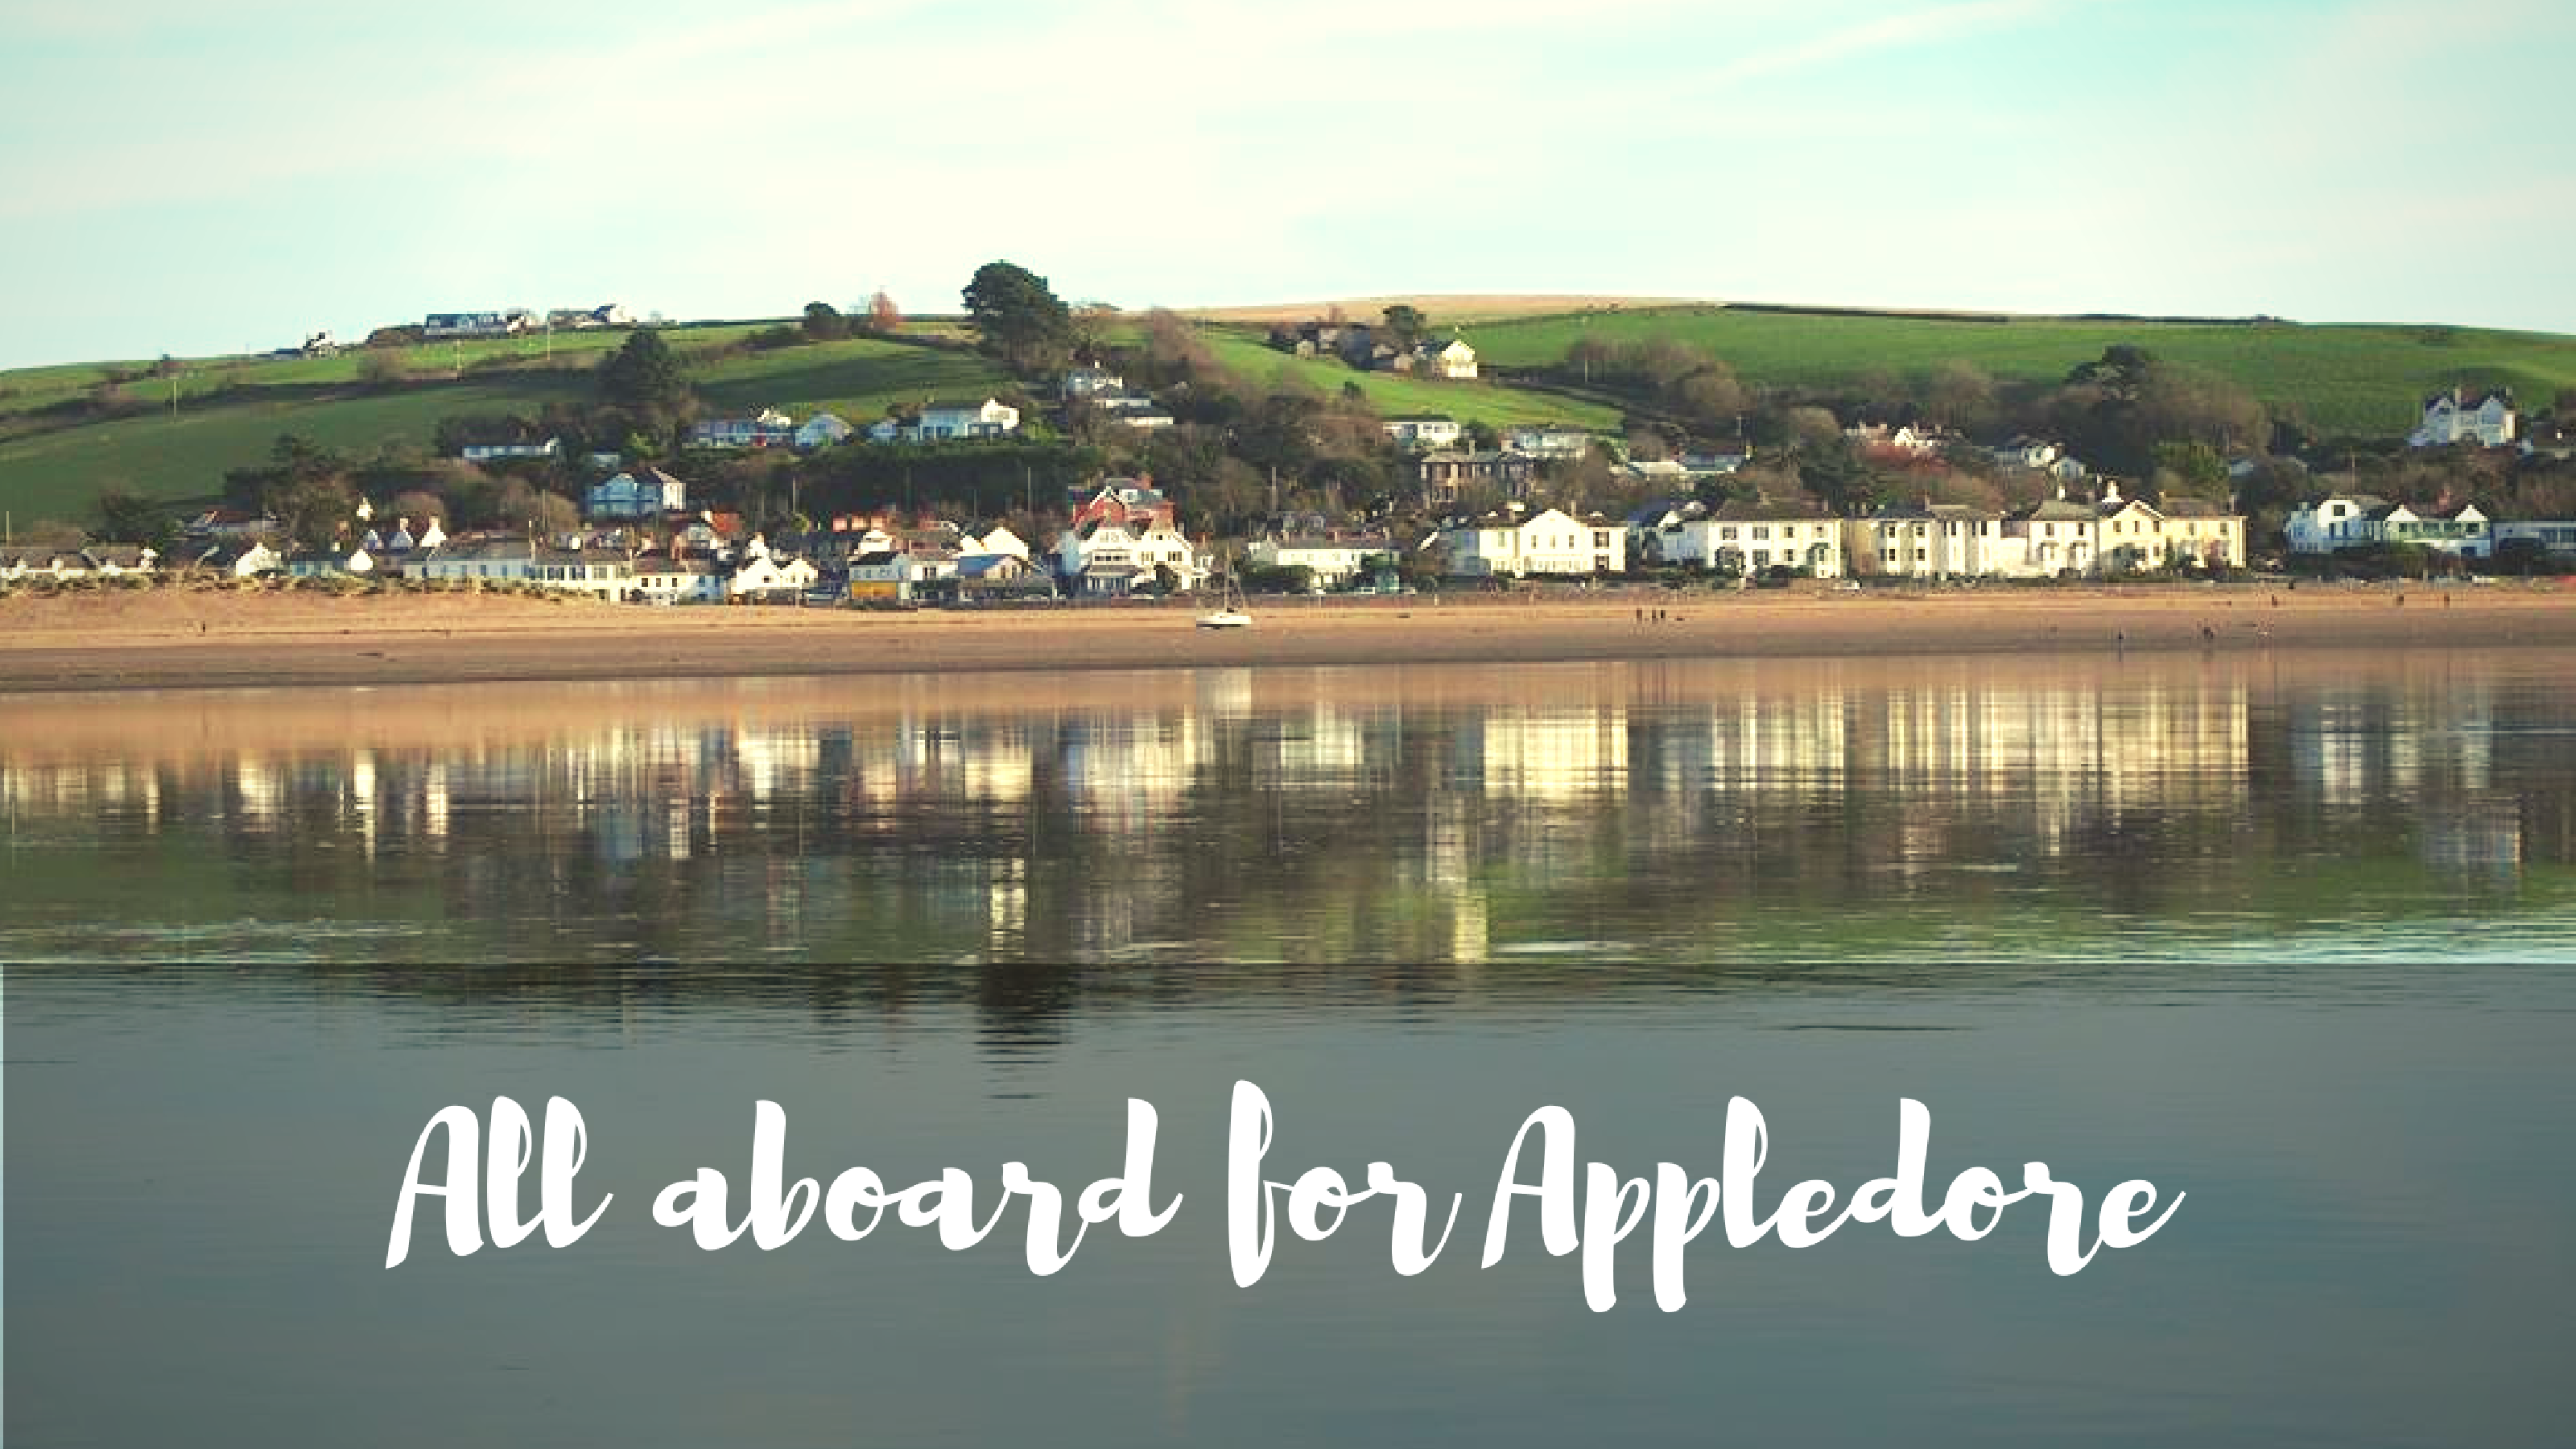 All aboard for Appledore